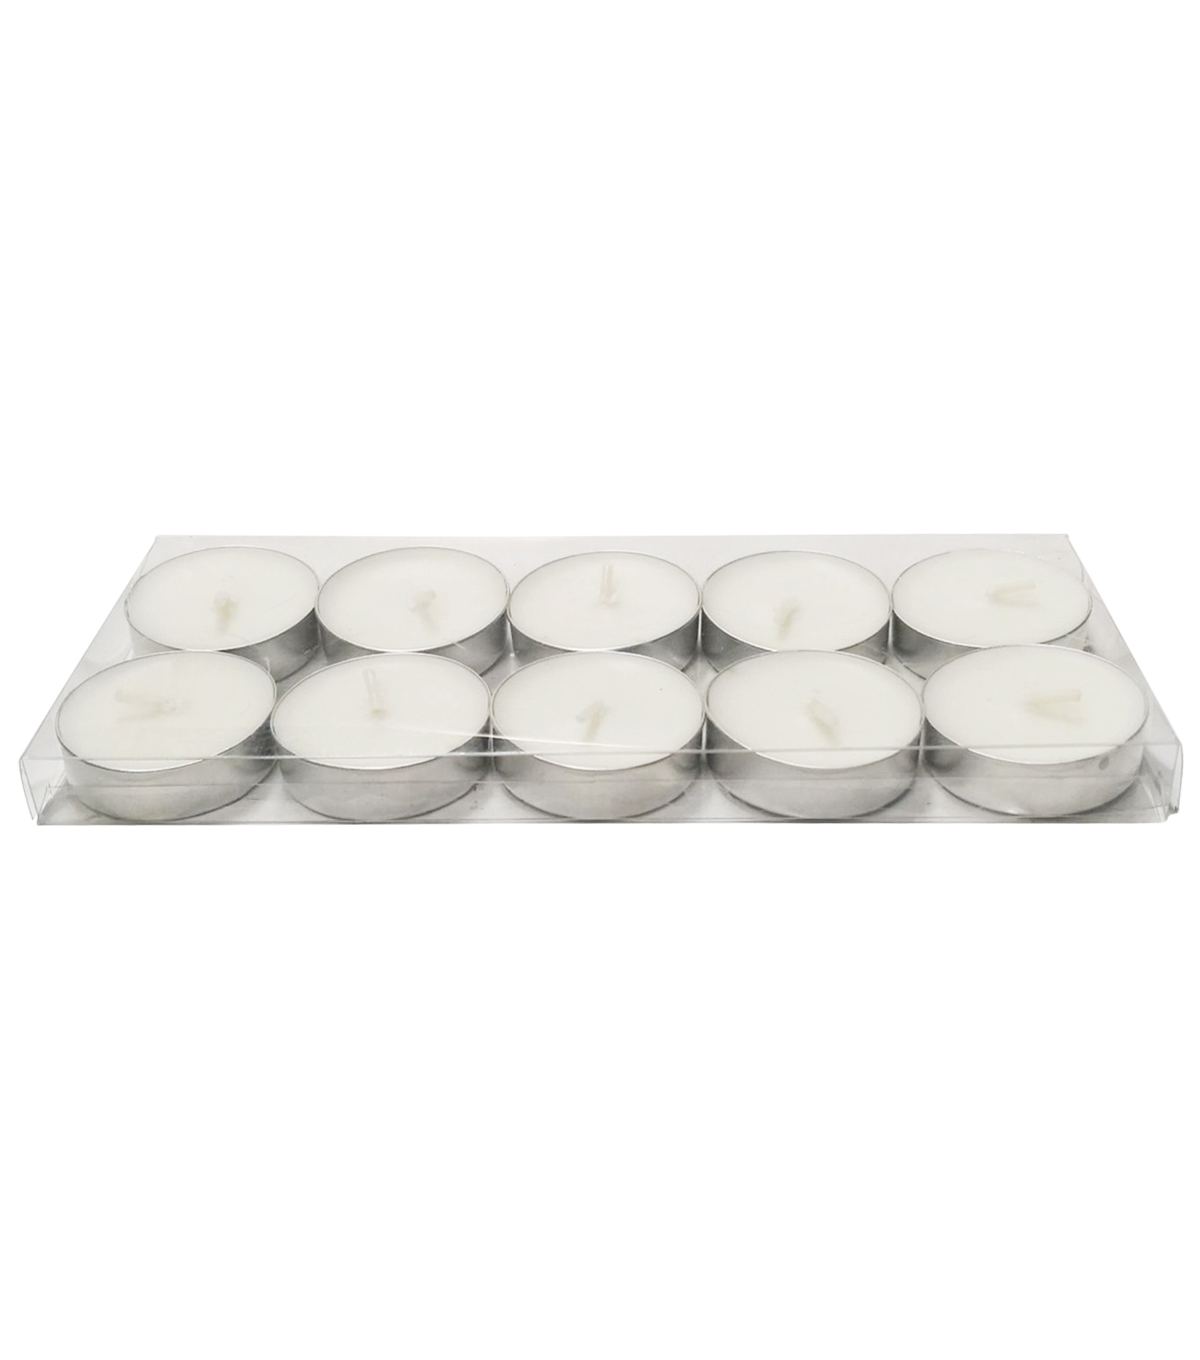 Hudson 43 Candle & Light Collection 10 Pack Poured Tealights Unscented White